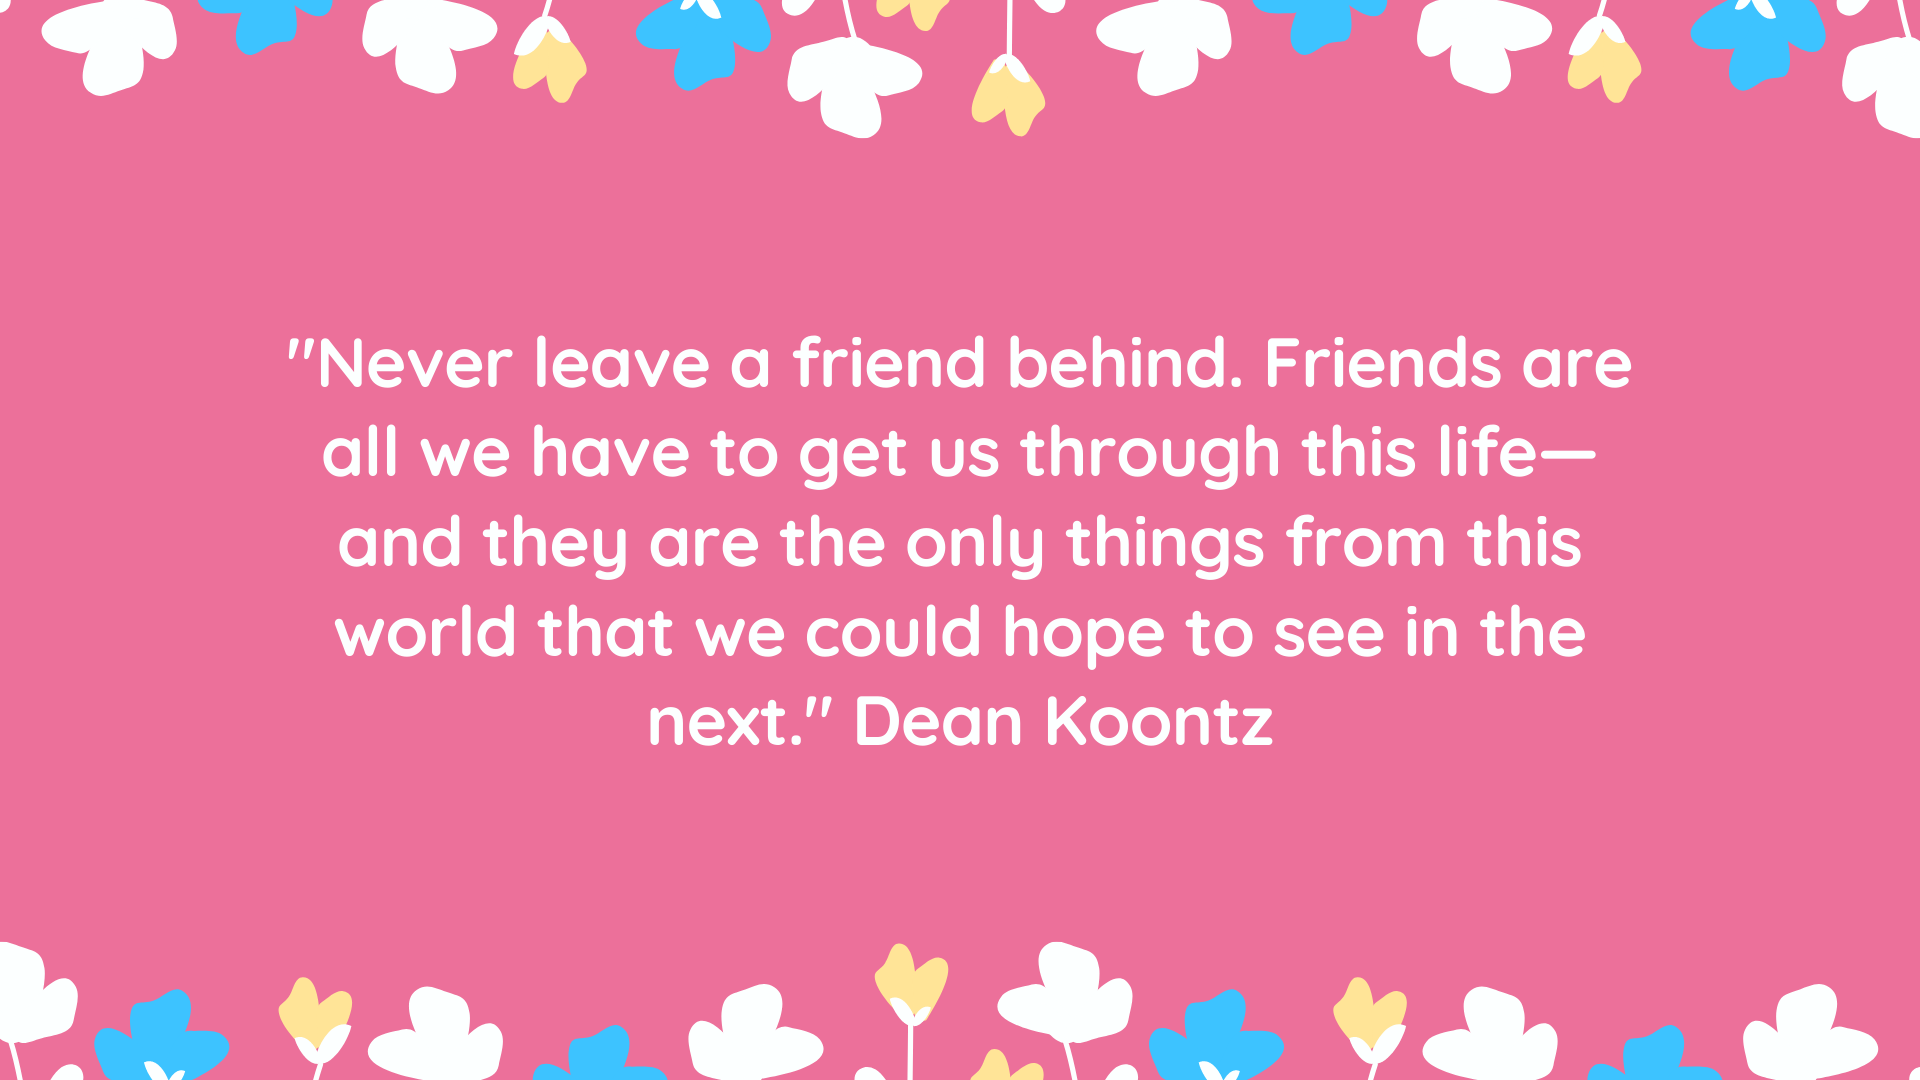 """""""Never leave a friend behind. Friends are all we have to get us through this life—and they are the only things from this world that we could hope to see in the next."""" Dean Koontz"""